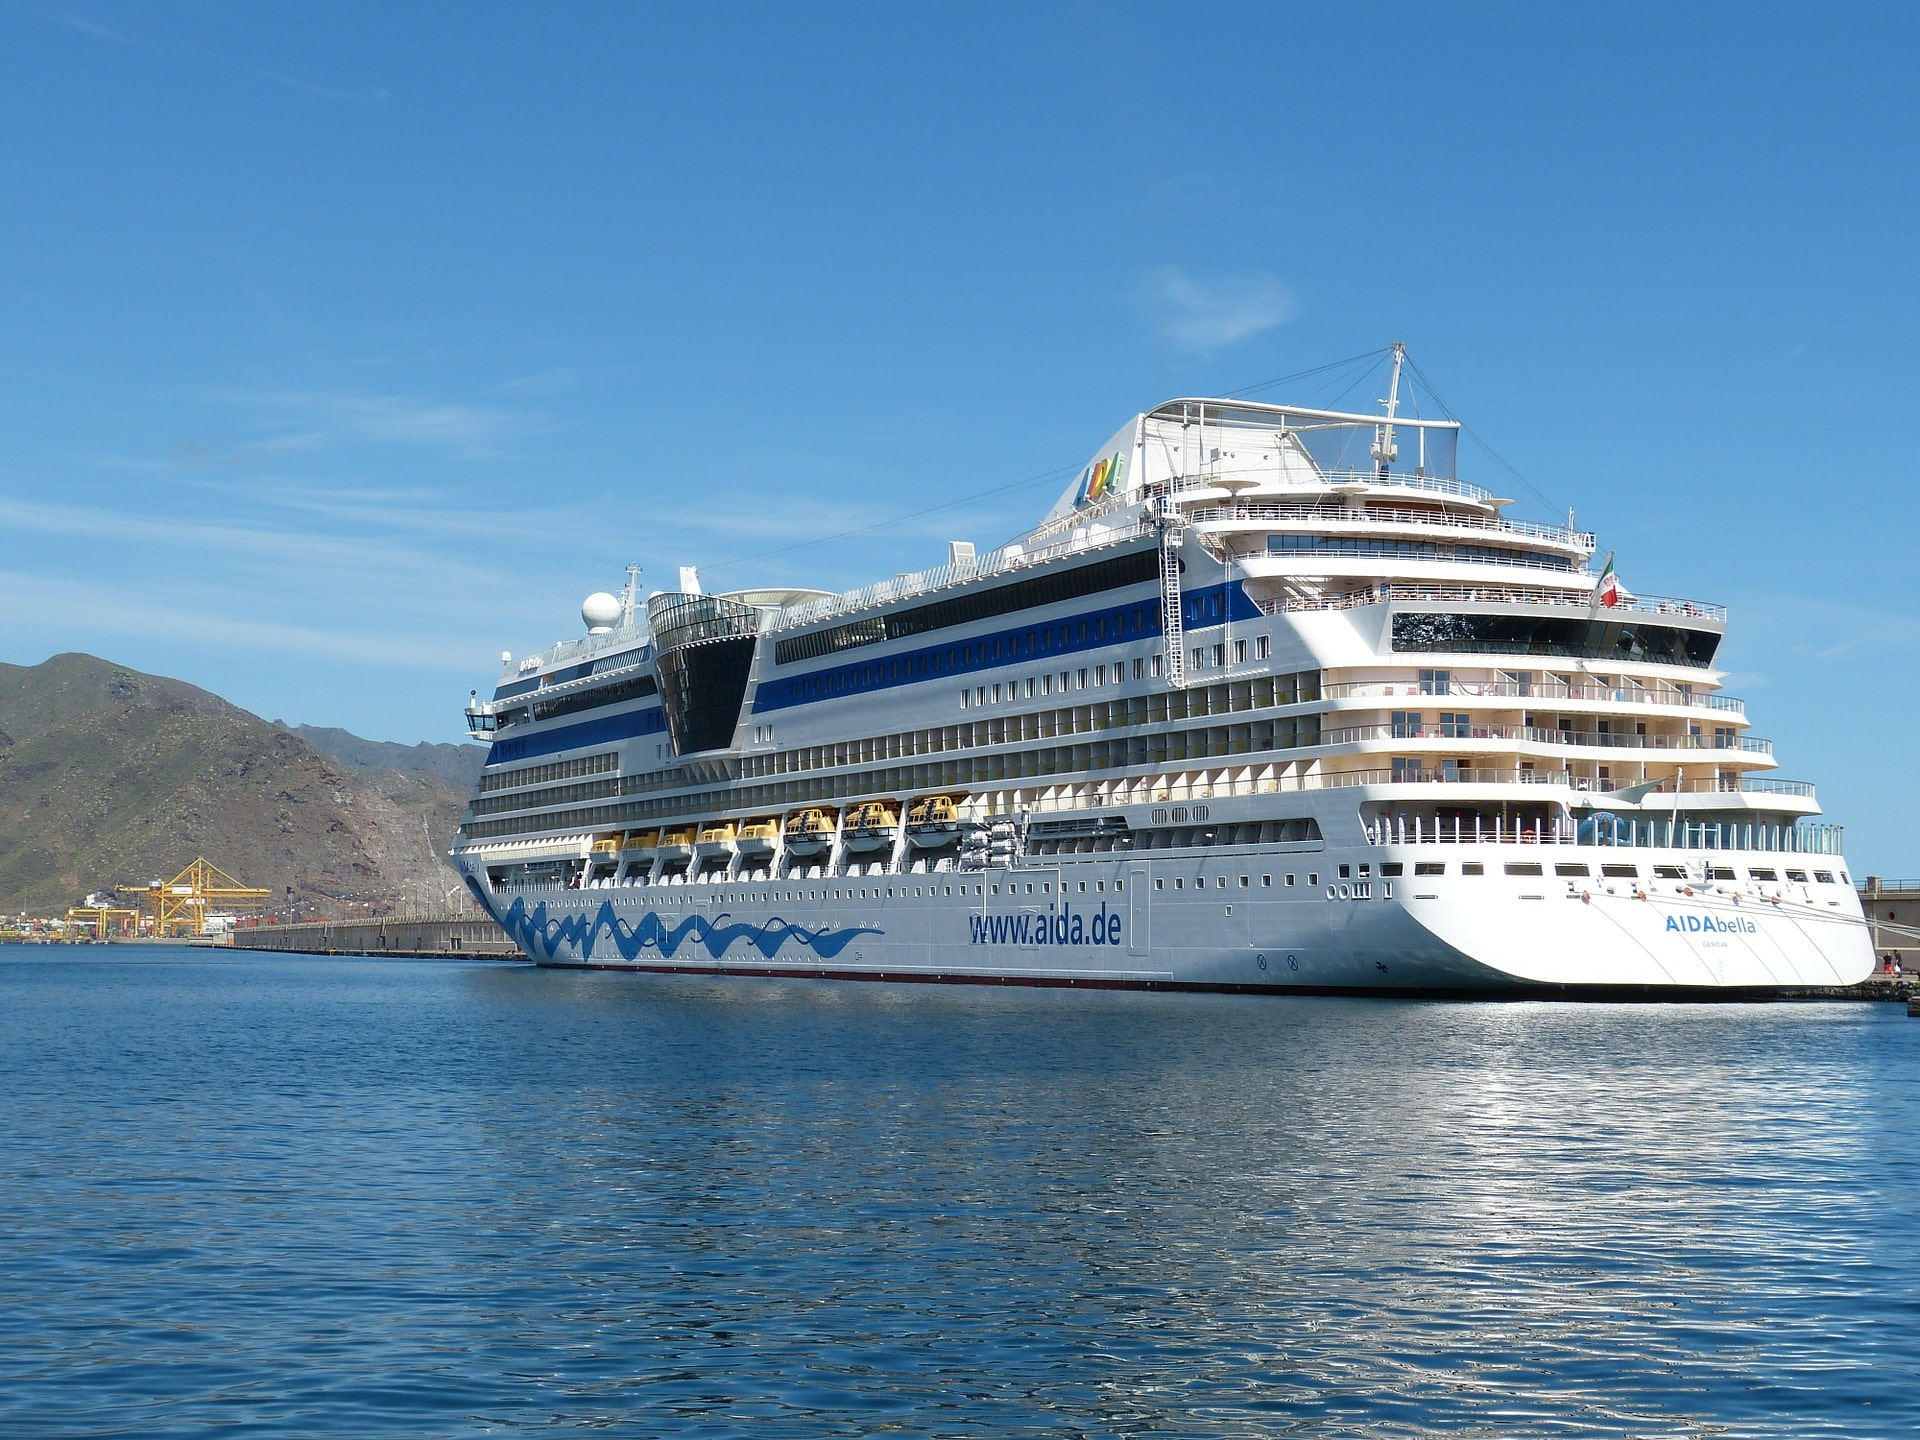 Tenerife Cruise Port